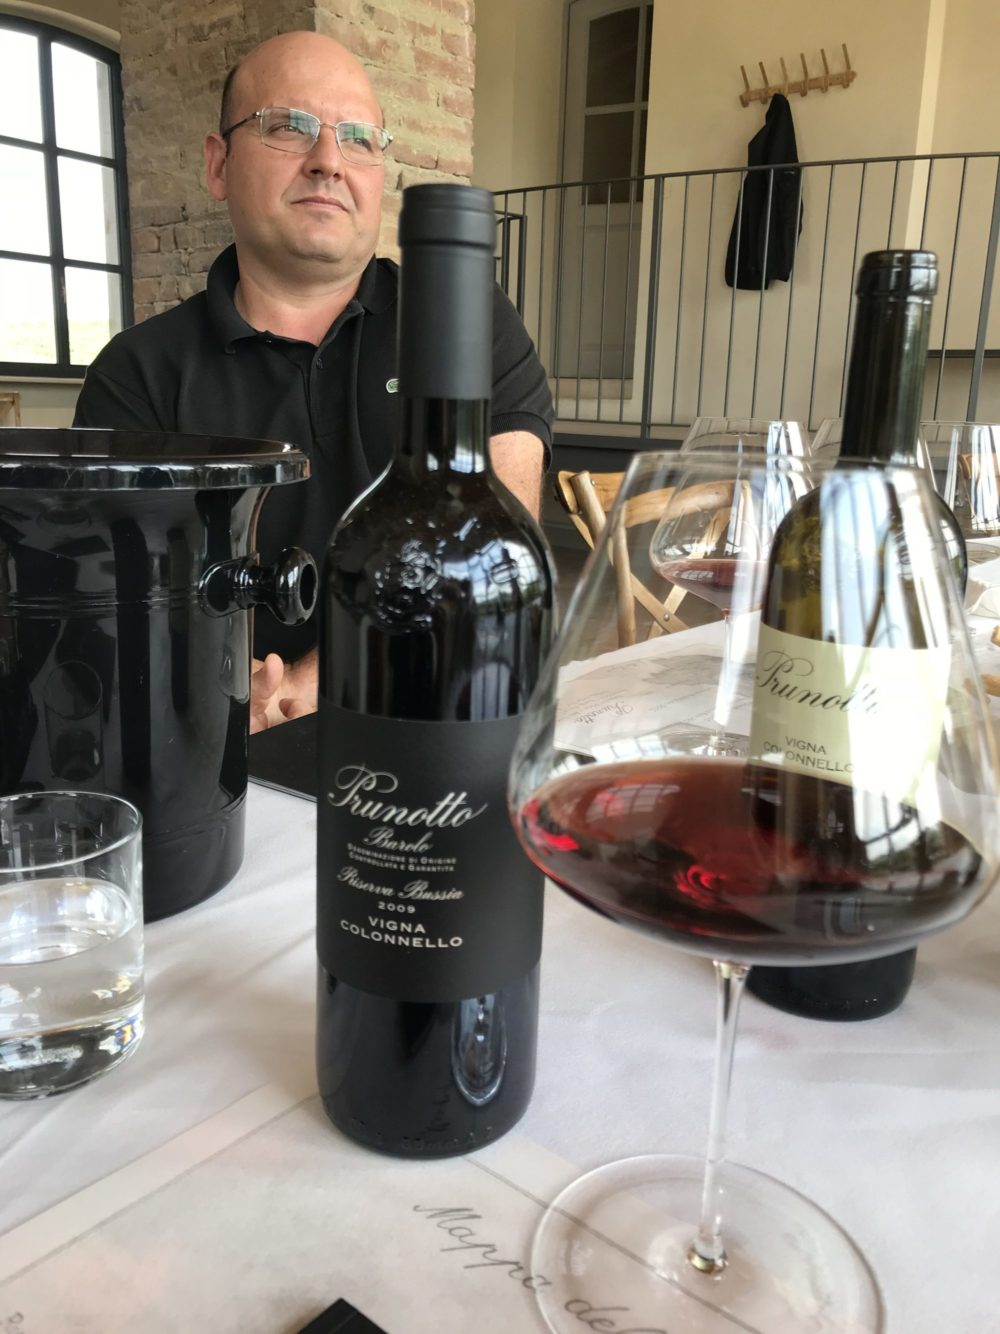 Prunotto's Vigna Colonnello Barolo Riserva gets its own winery & tasting room